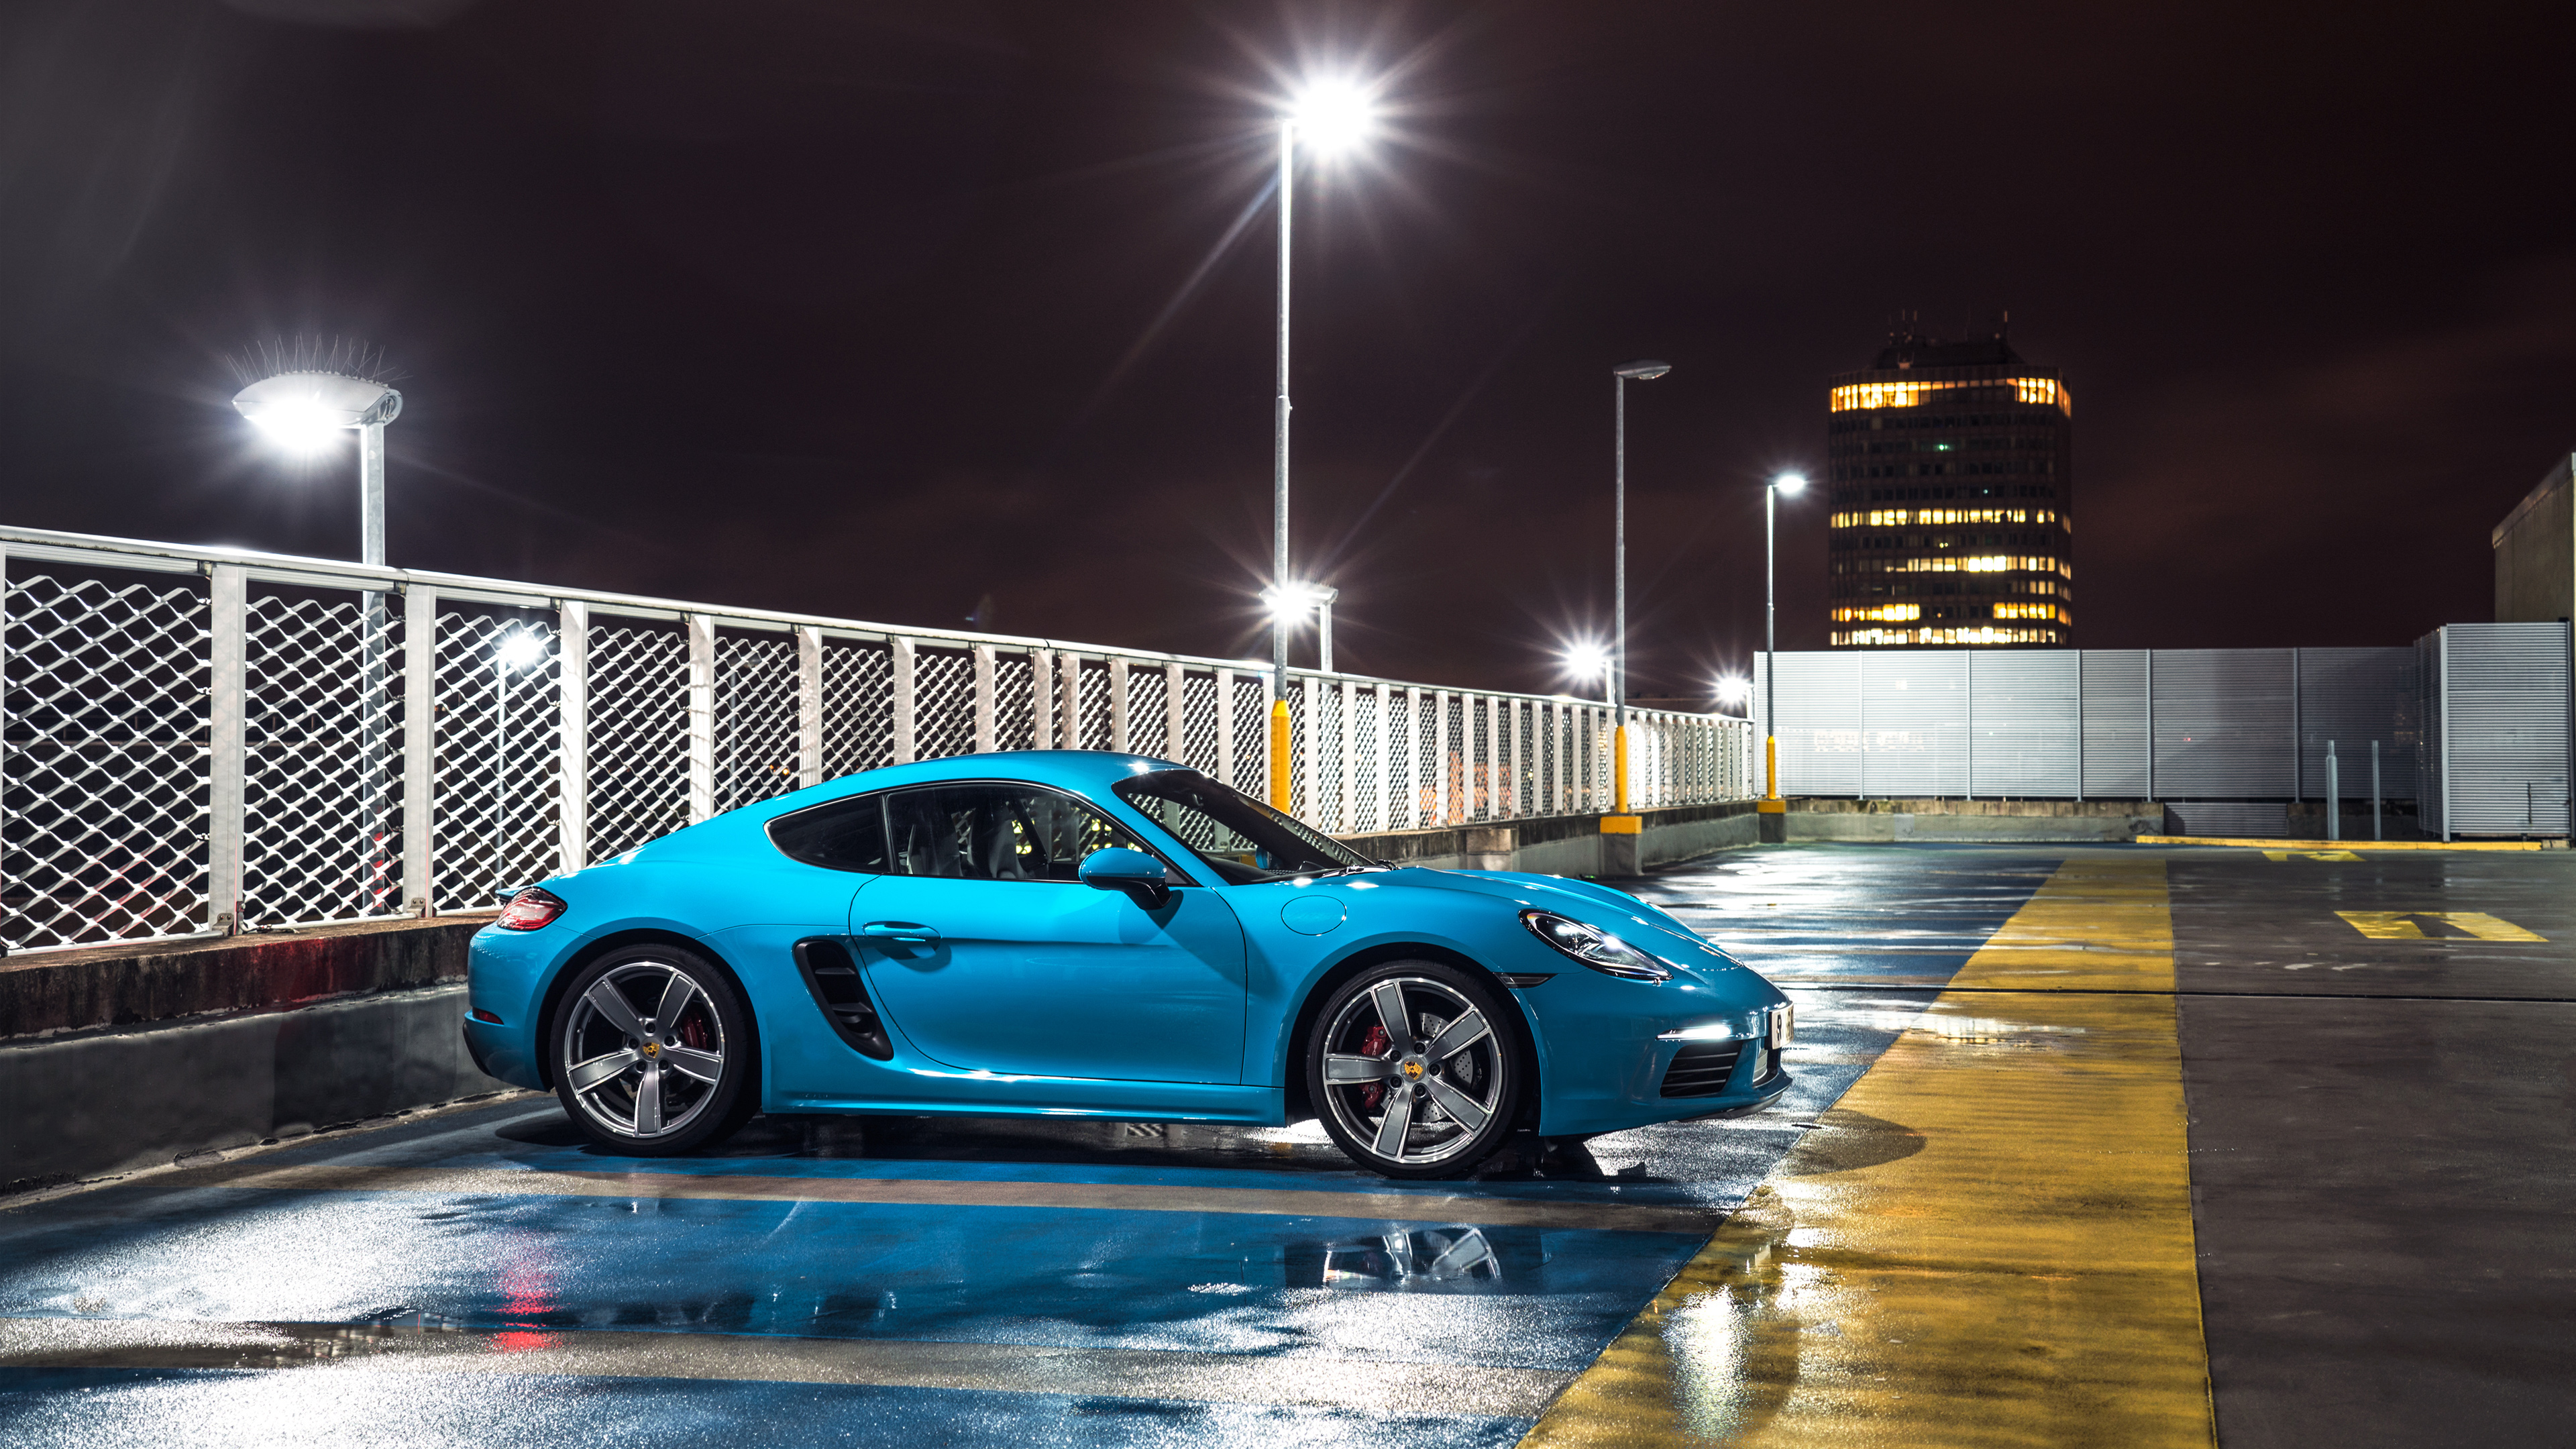 Porsche Cayman S 4k Wallpaper Hd Car Wallpapers Id 7165